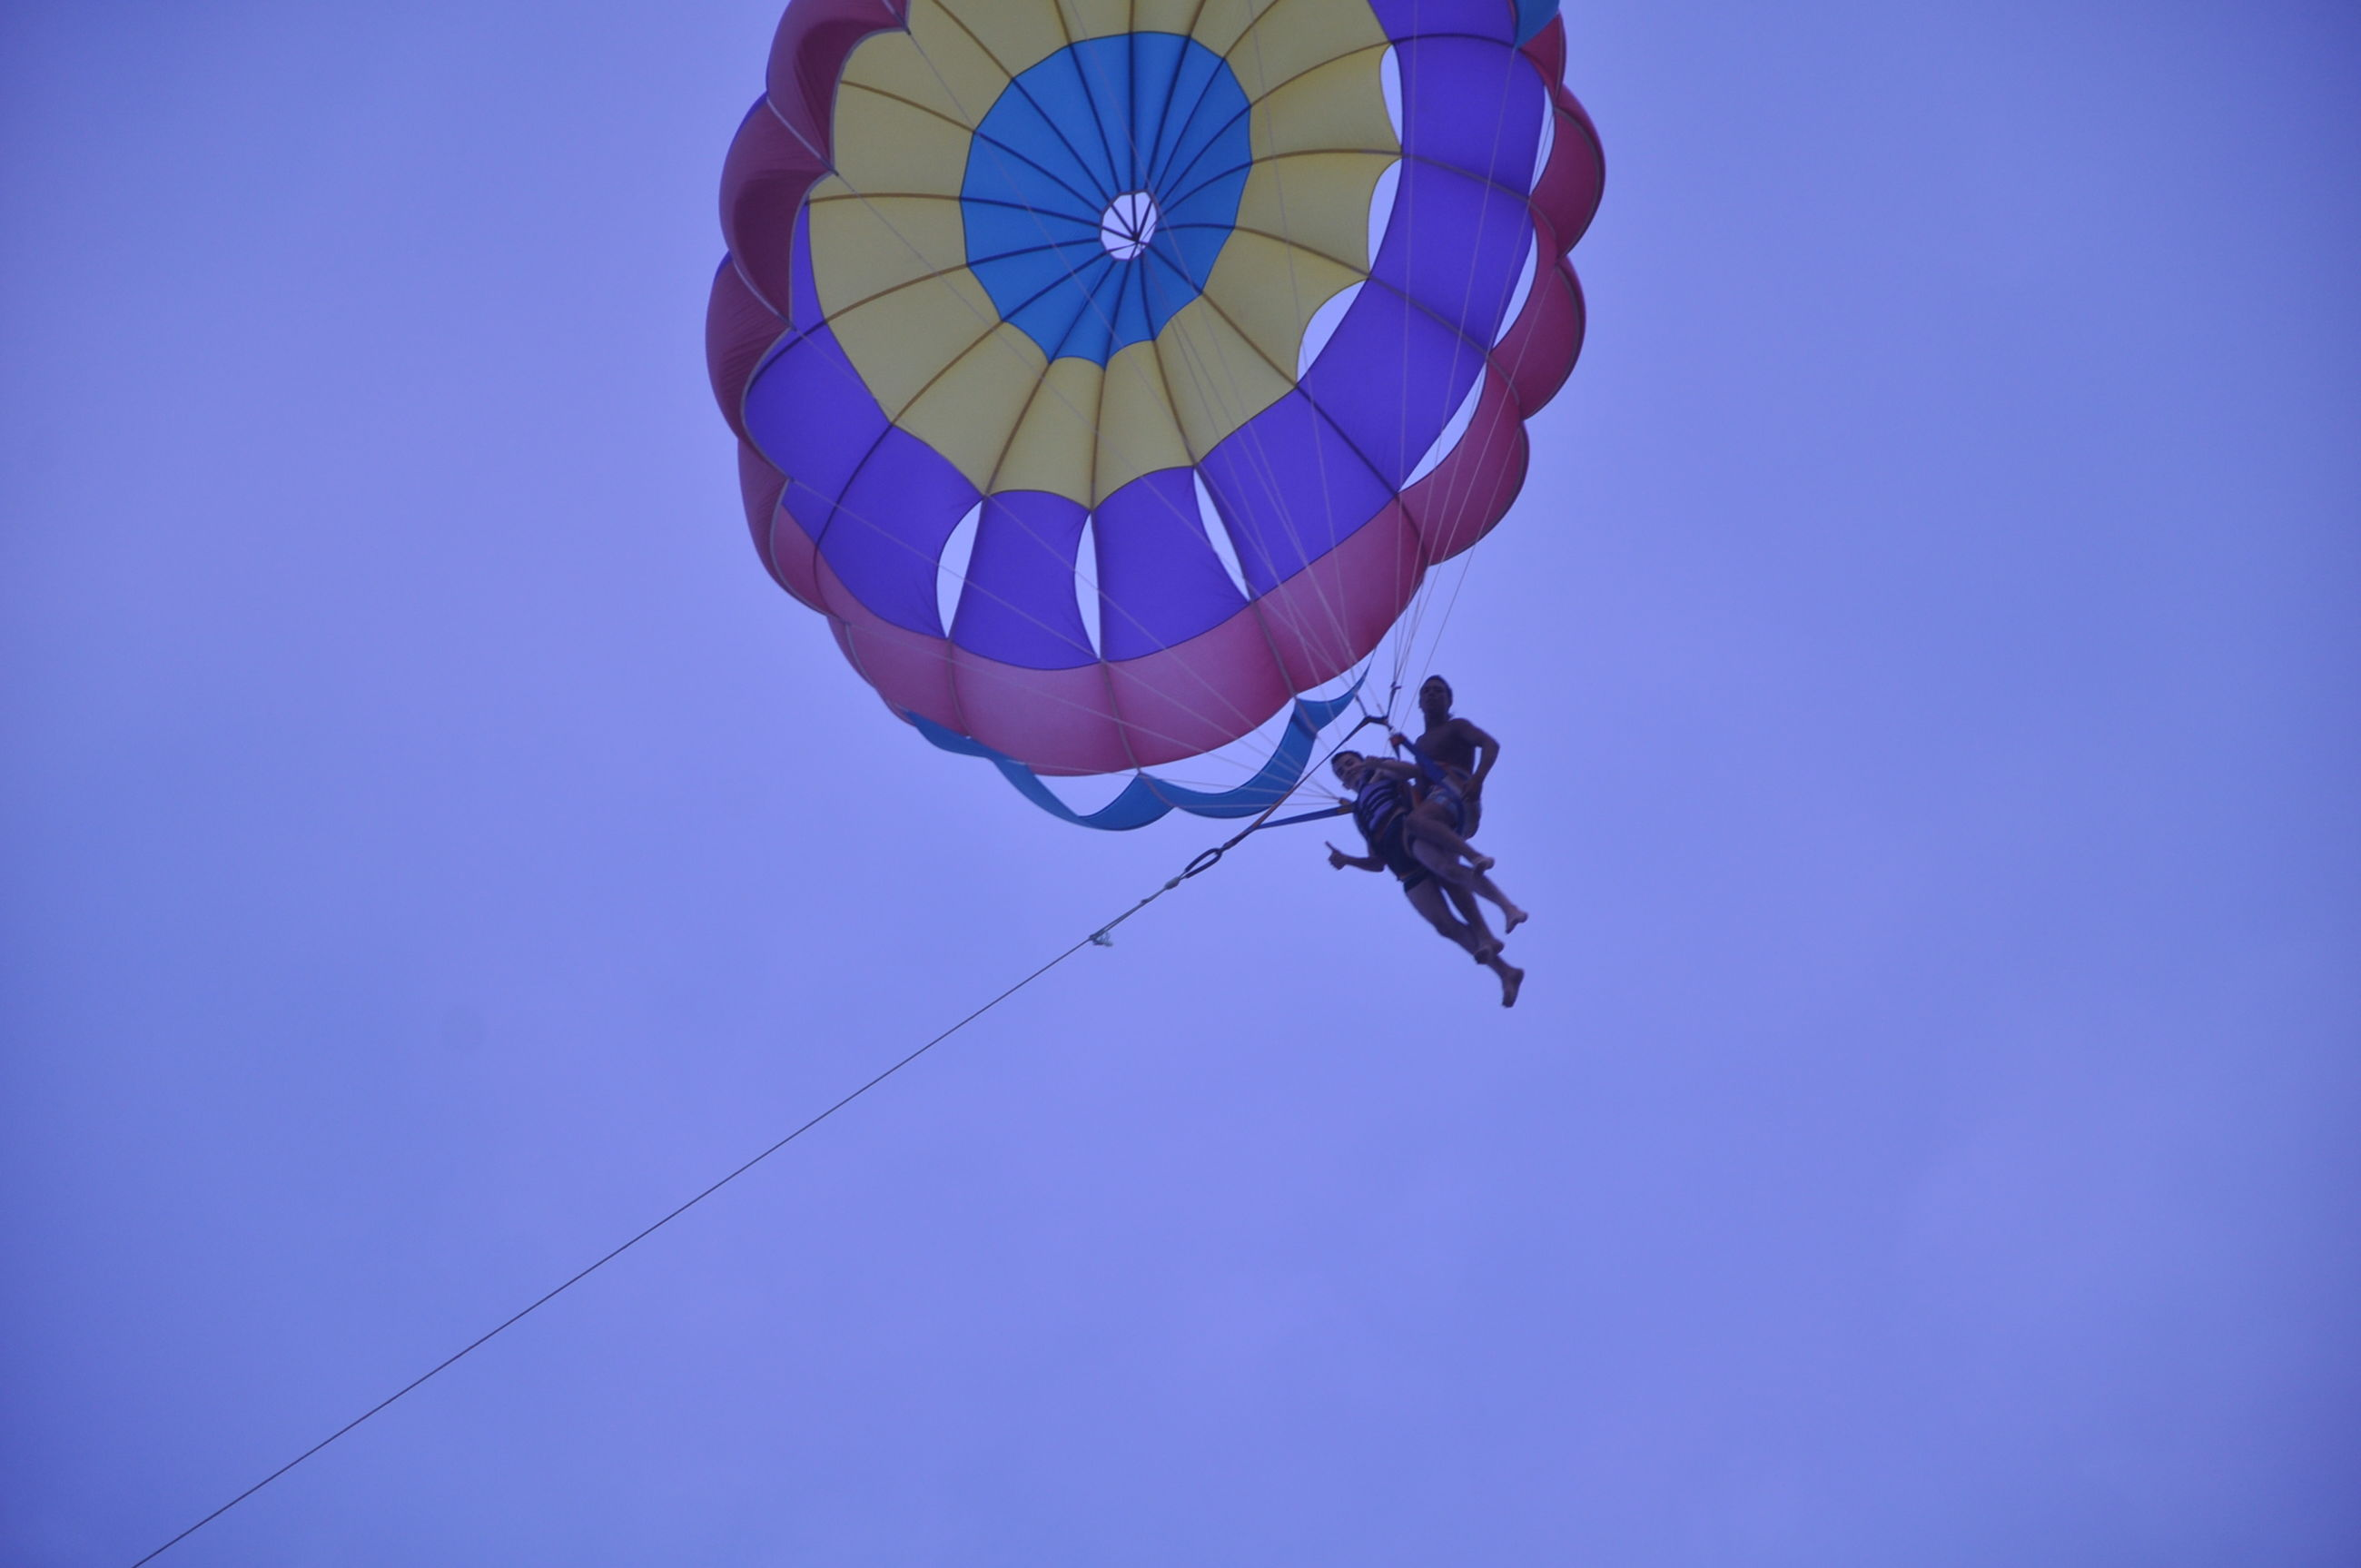 blue, low angle view, clear sky, flying, mid-air, copy space, transportation, air vehicle, multi colored, mode of transport, fun, sky, adventure, parachute, day, outdoors, kite - toy, no people, travel, freedom